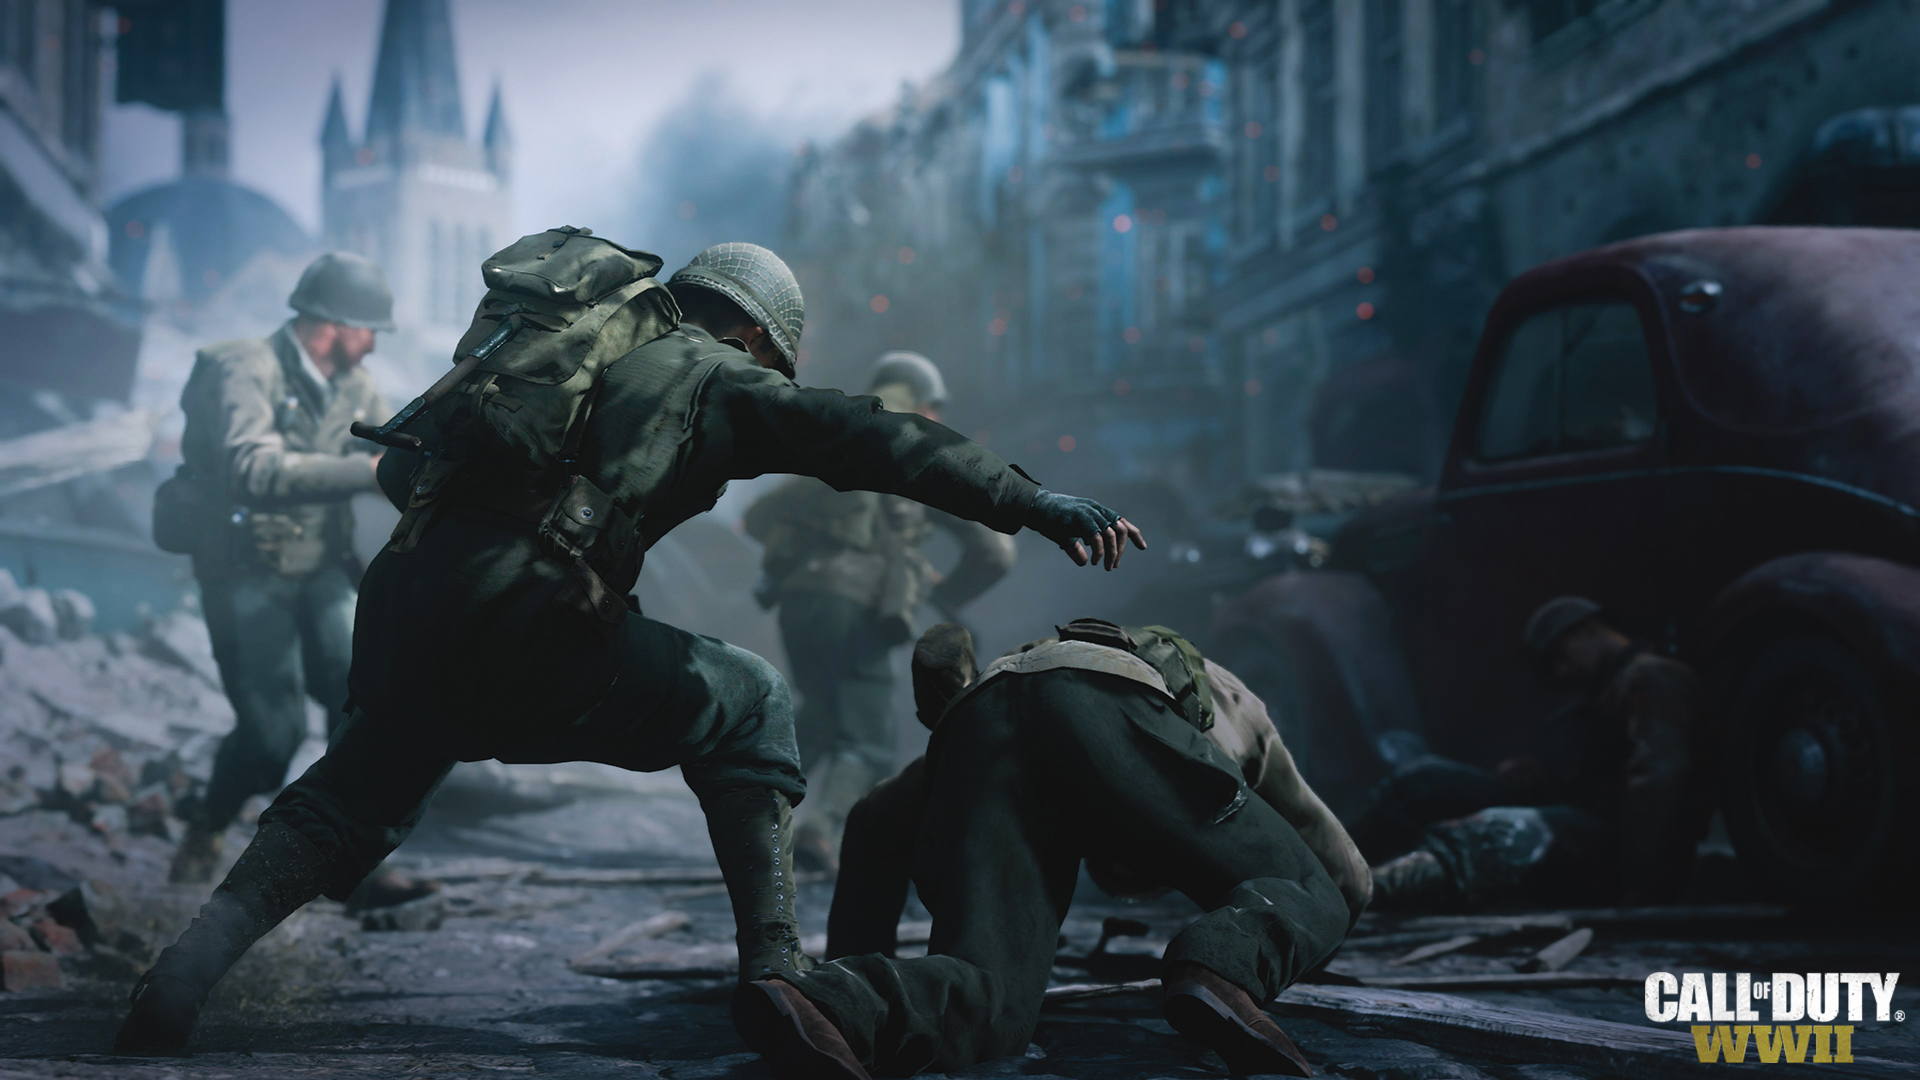 call of duty wwii video game wallpaper 61212